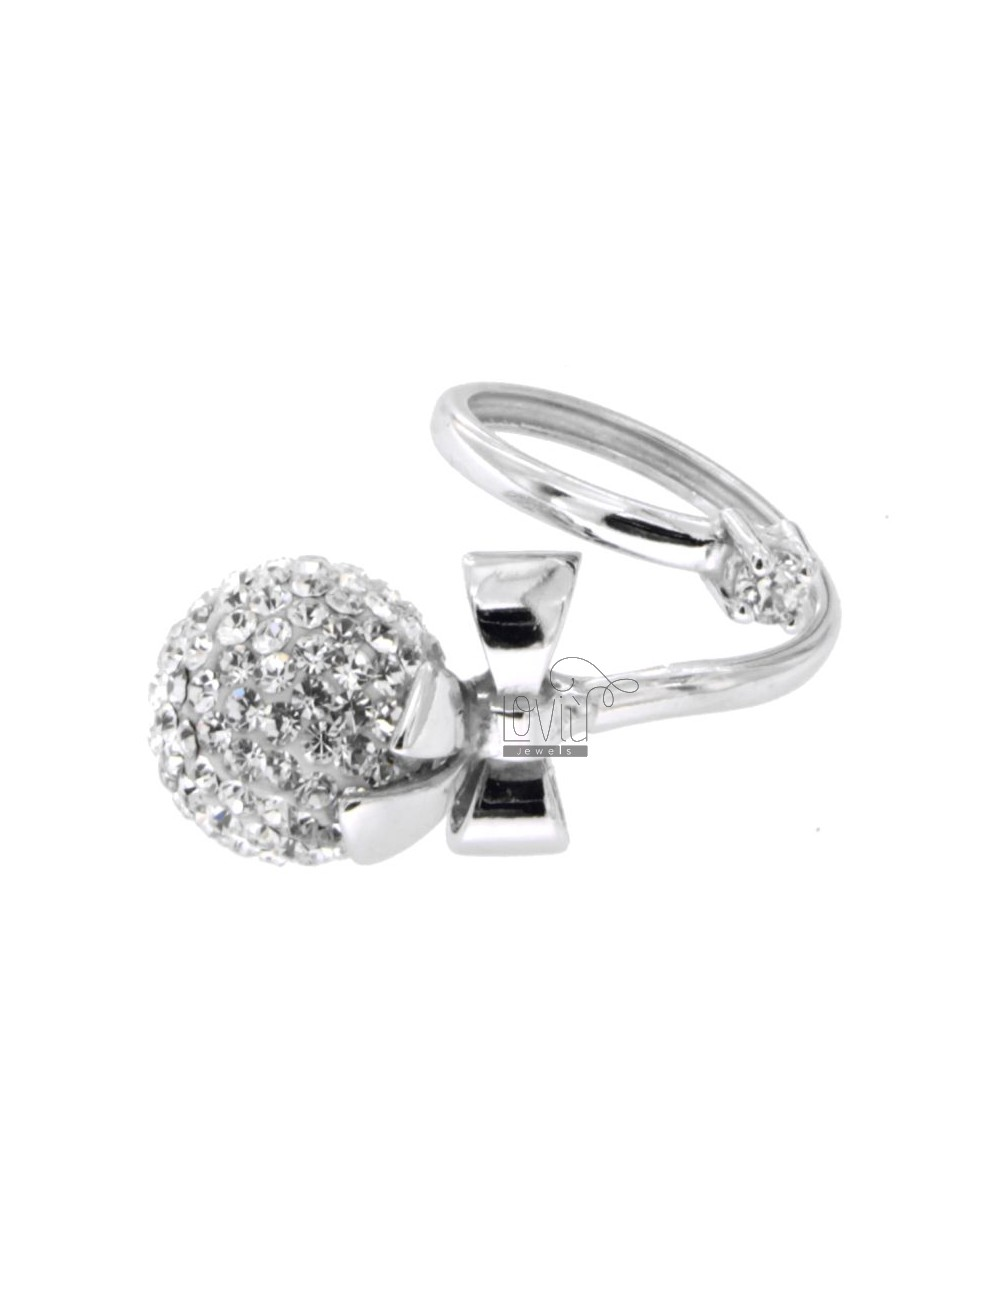 BOW RING WITH CRYSTAL BALL RESIN AND 12 MM IN RHODIUM AG TIT 925 ‰ SIZE ADJUSTABLE